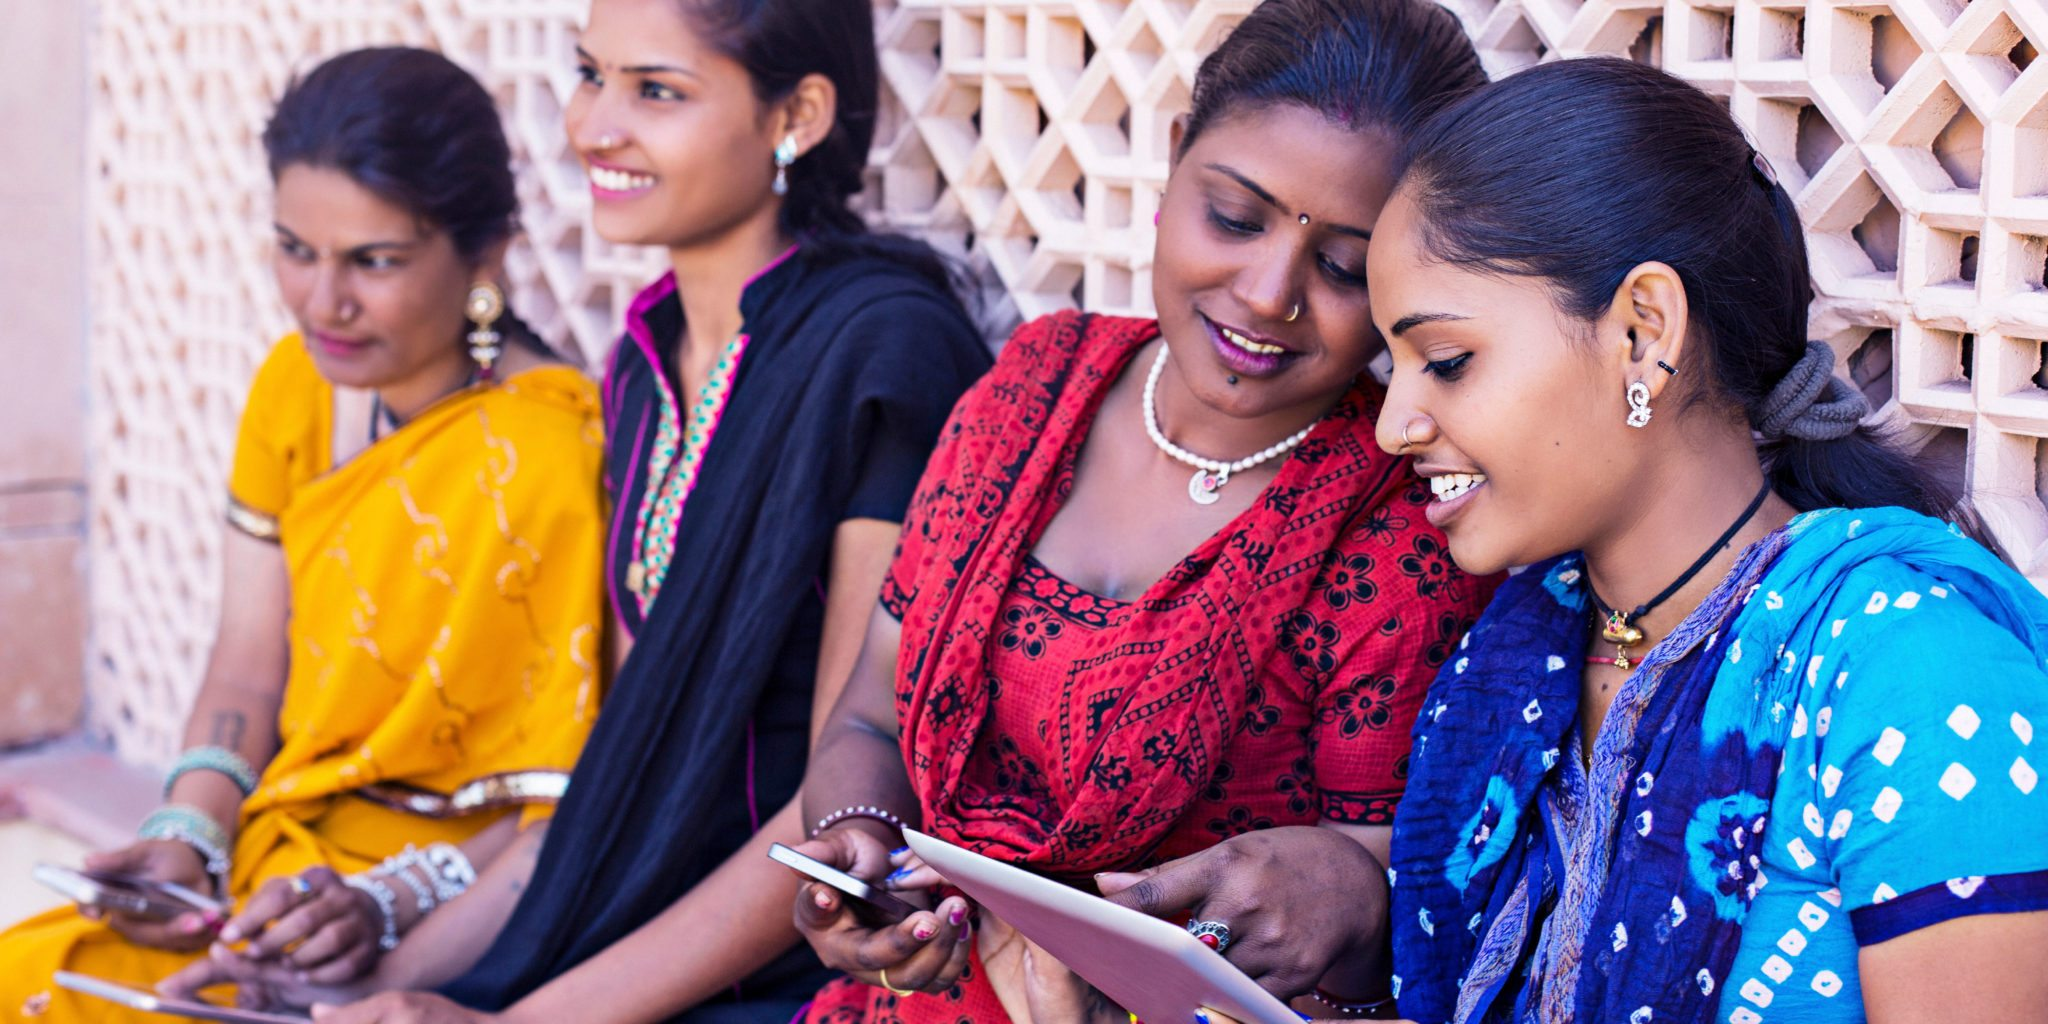 Global Consumer Insights – India